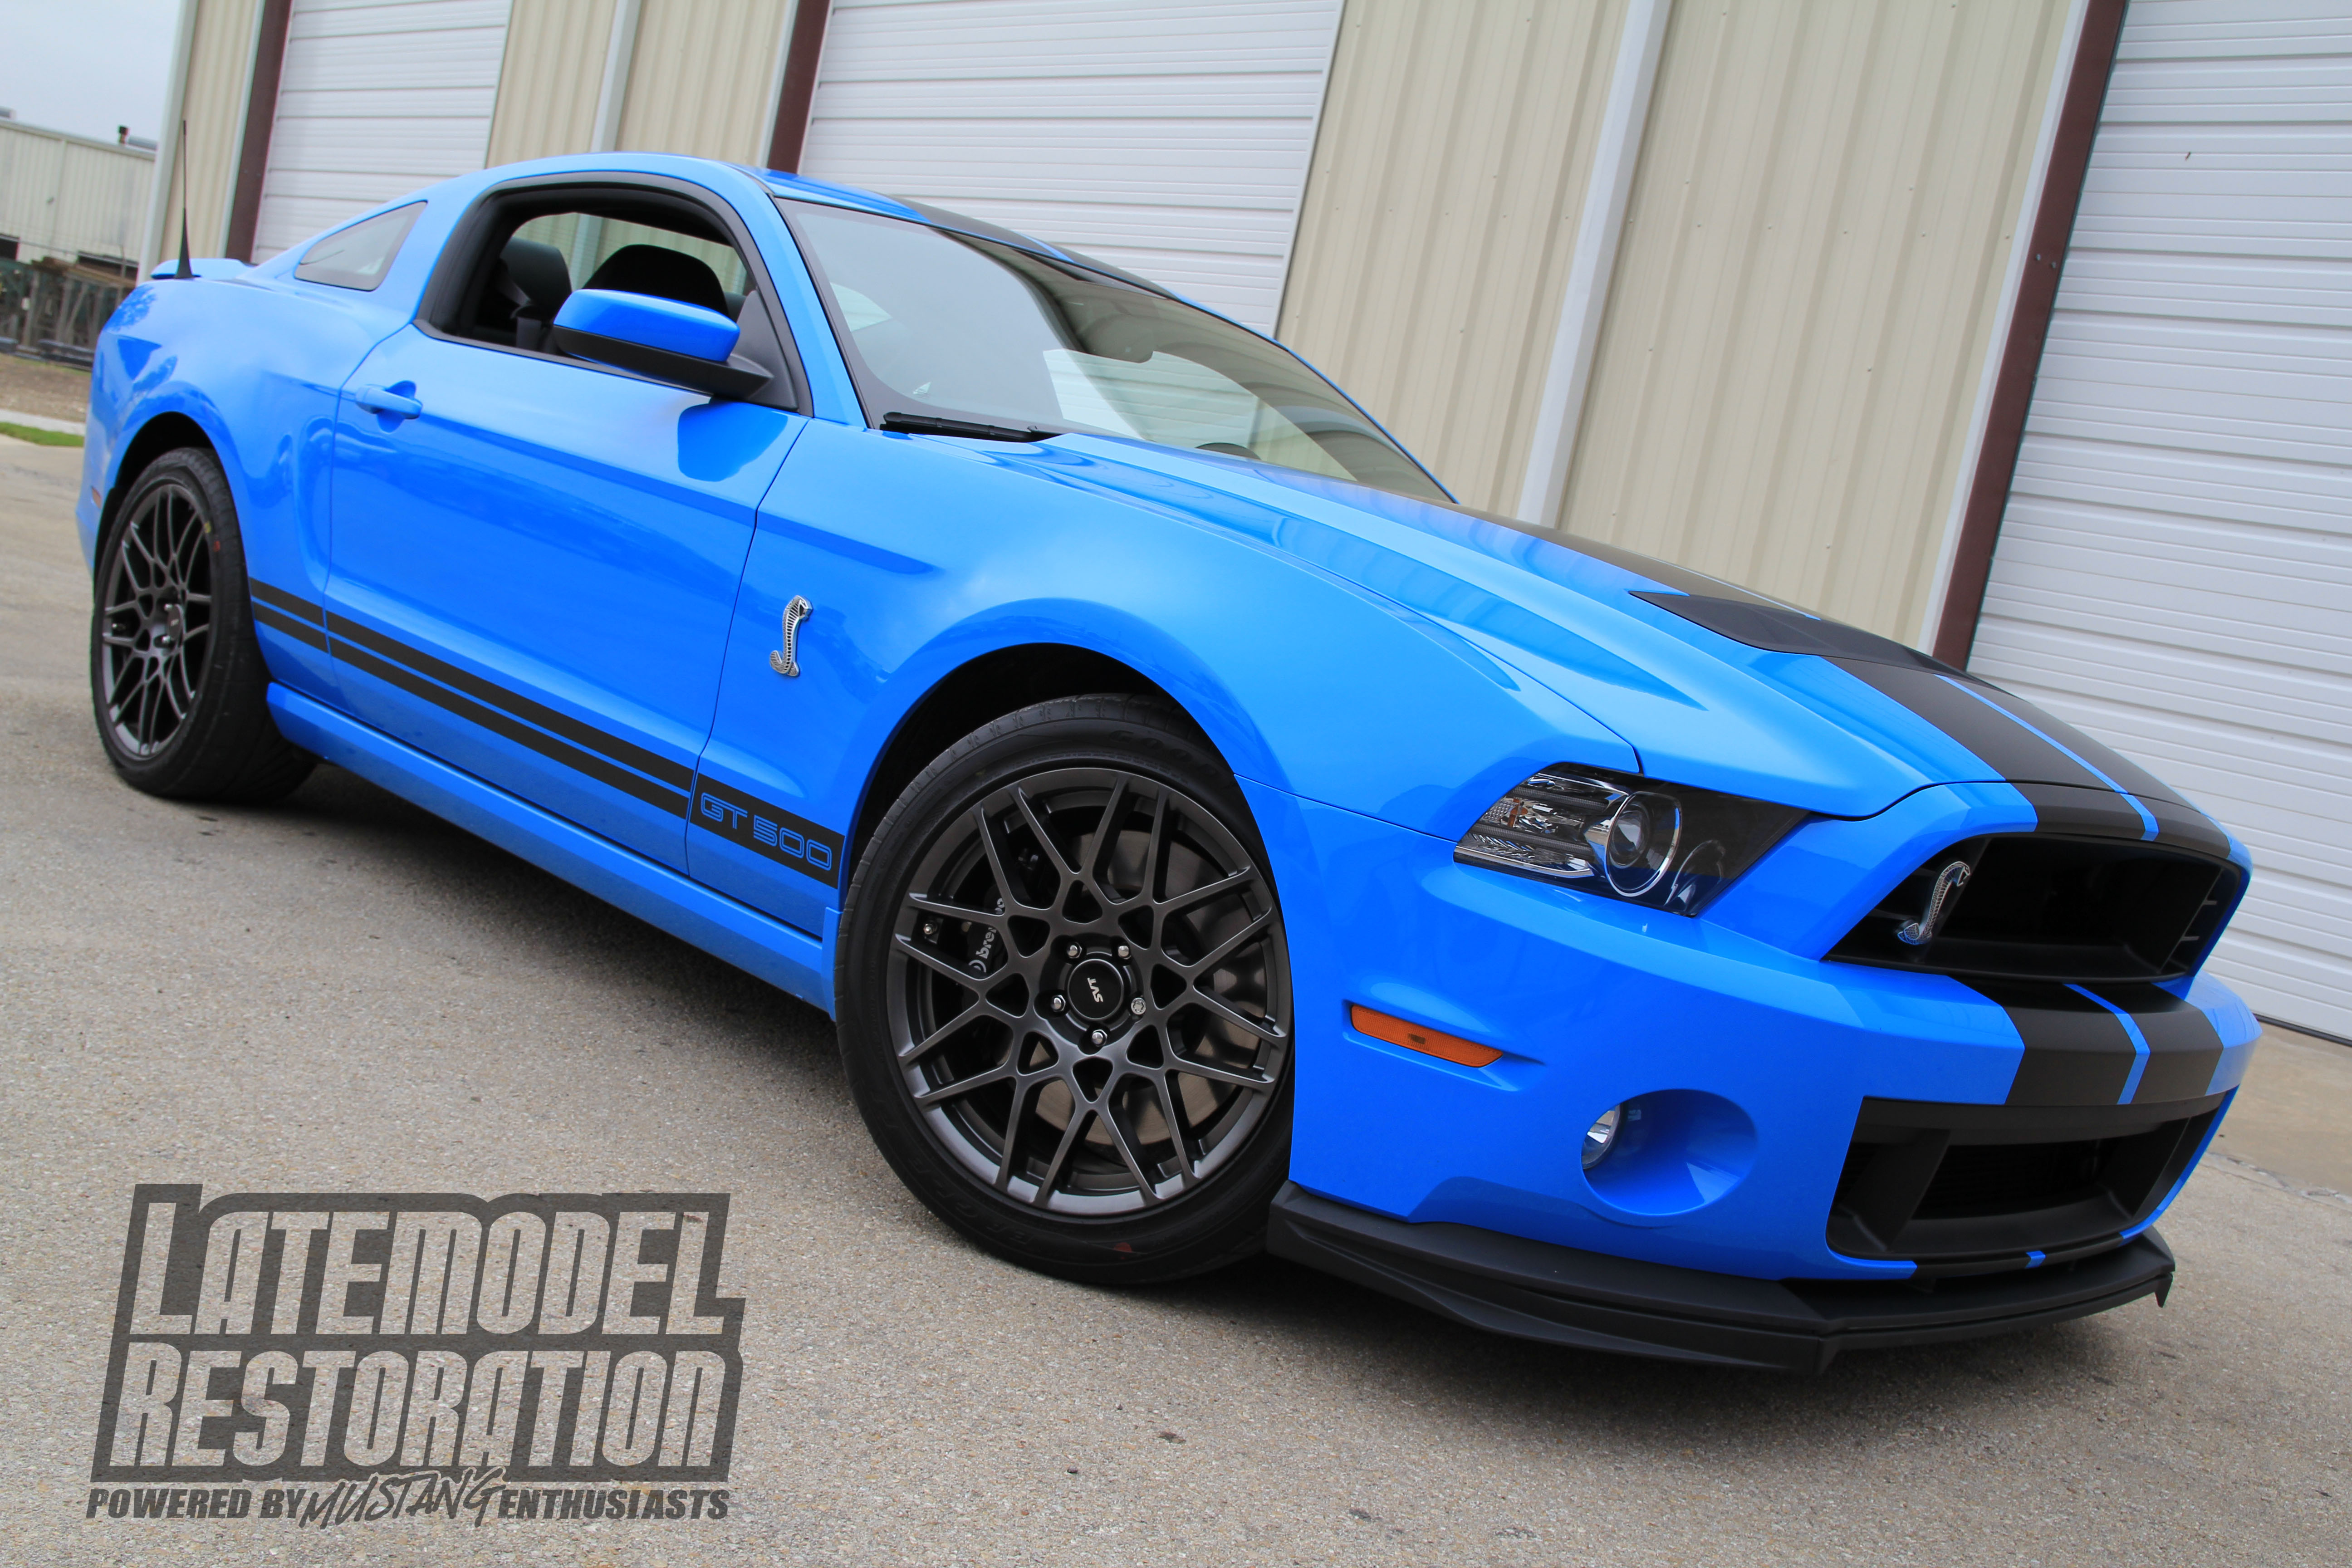 Top 10 Fastest Production Mustangs - LMR.com